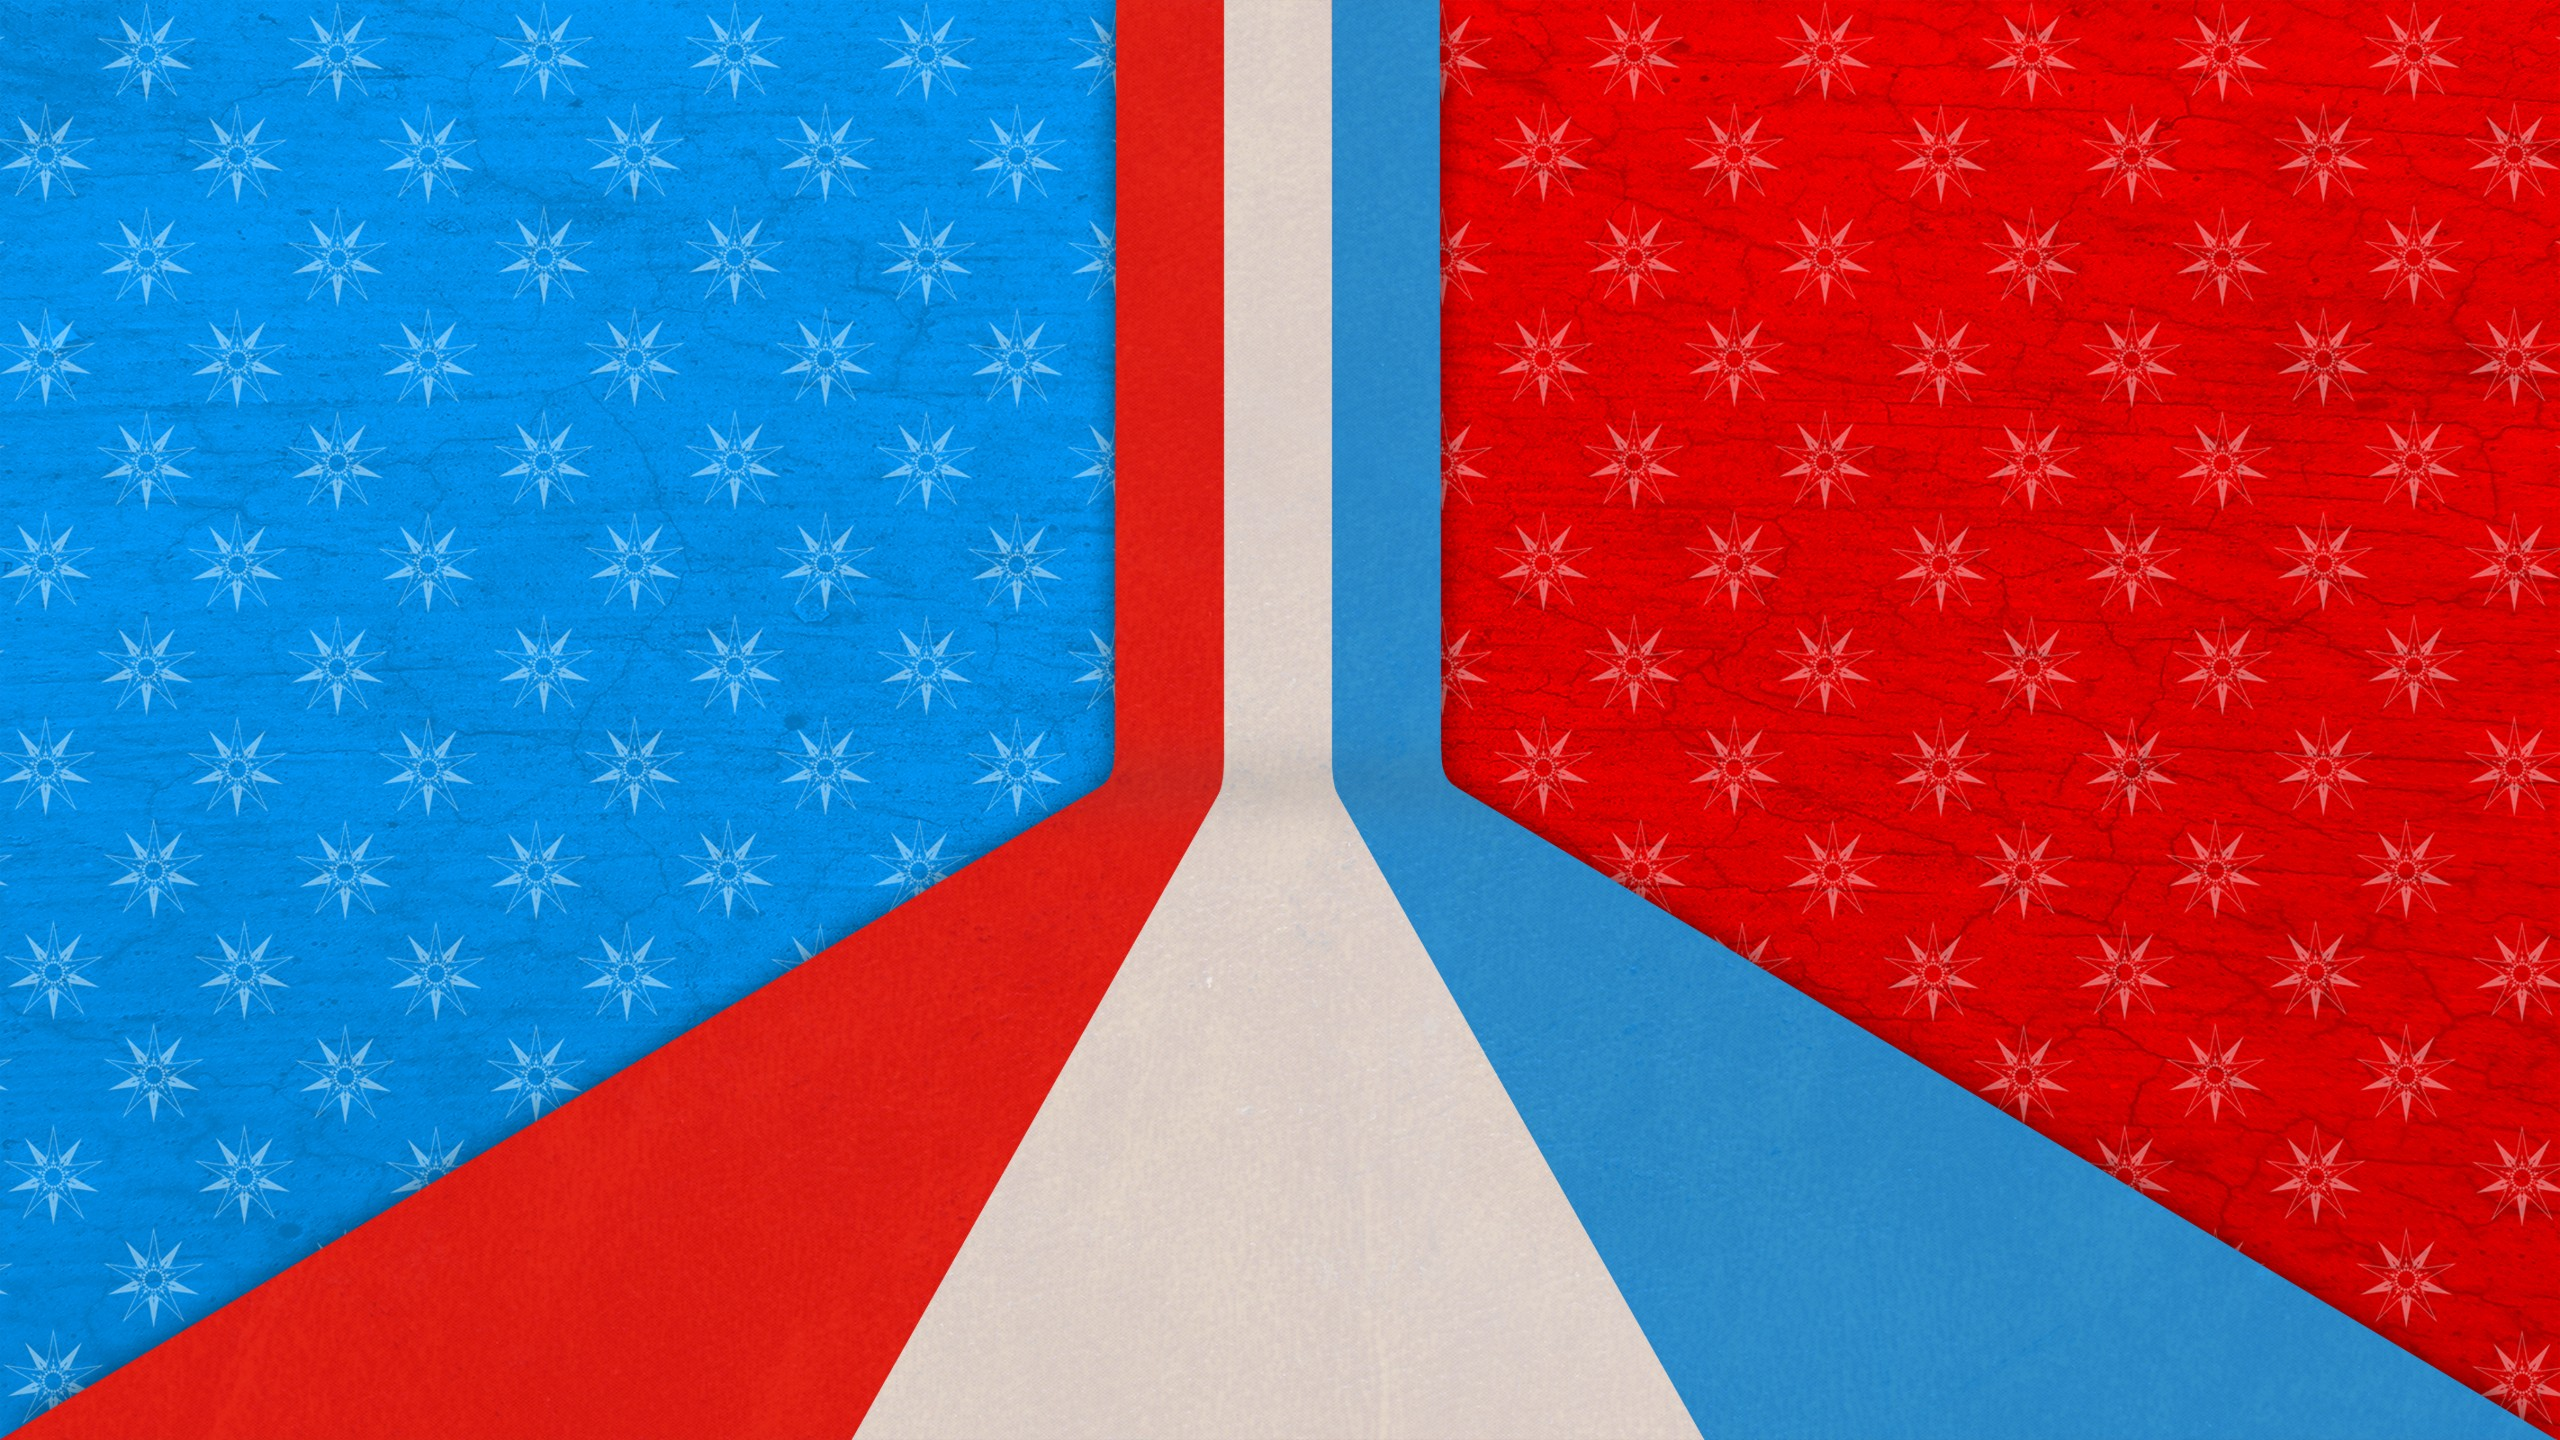 2560x1440 Red White And Blue Abstract Youtube Channel Cover